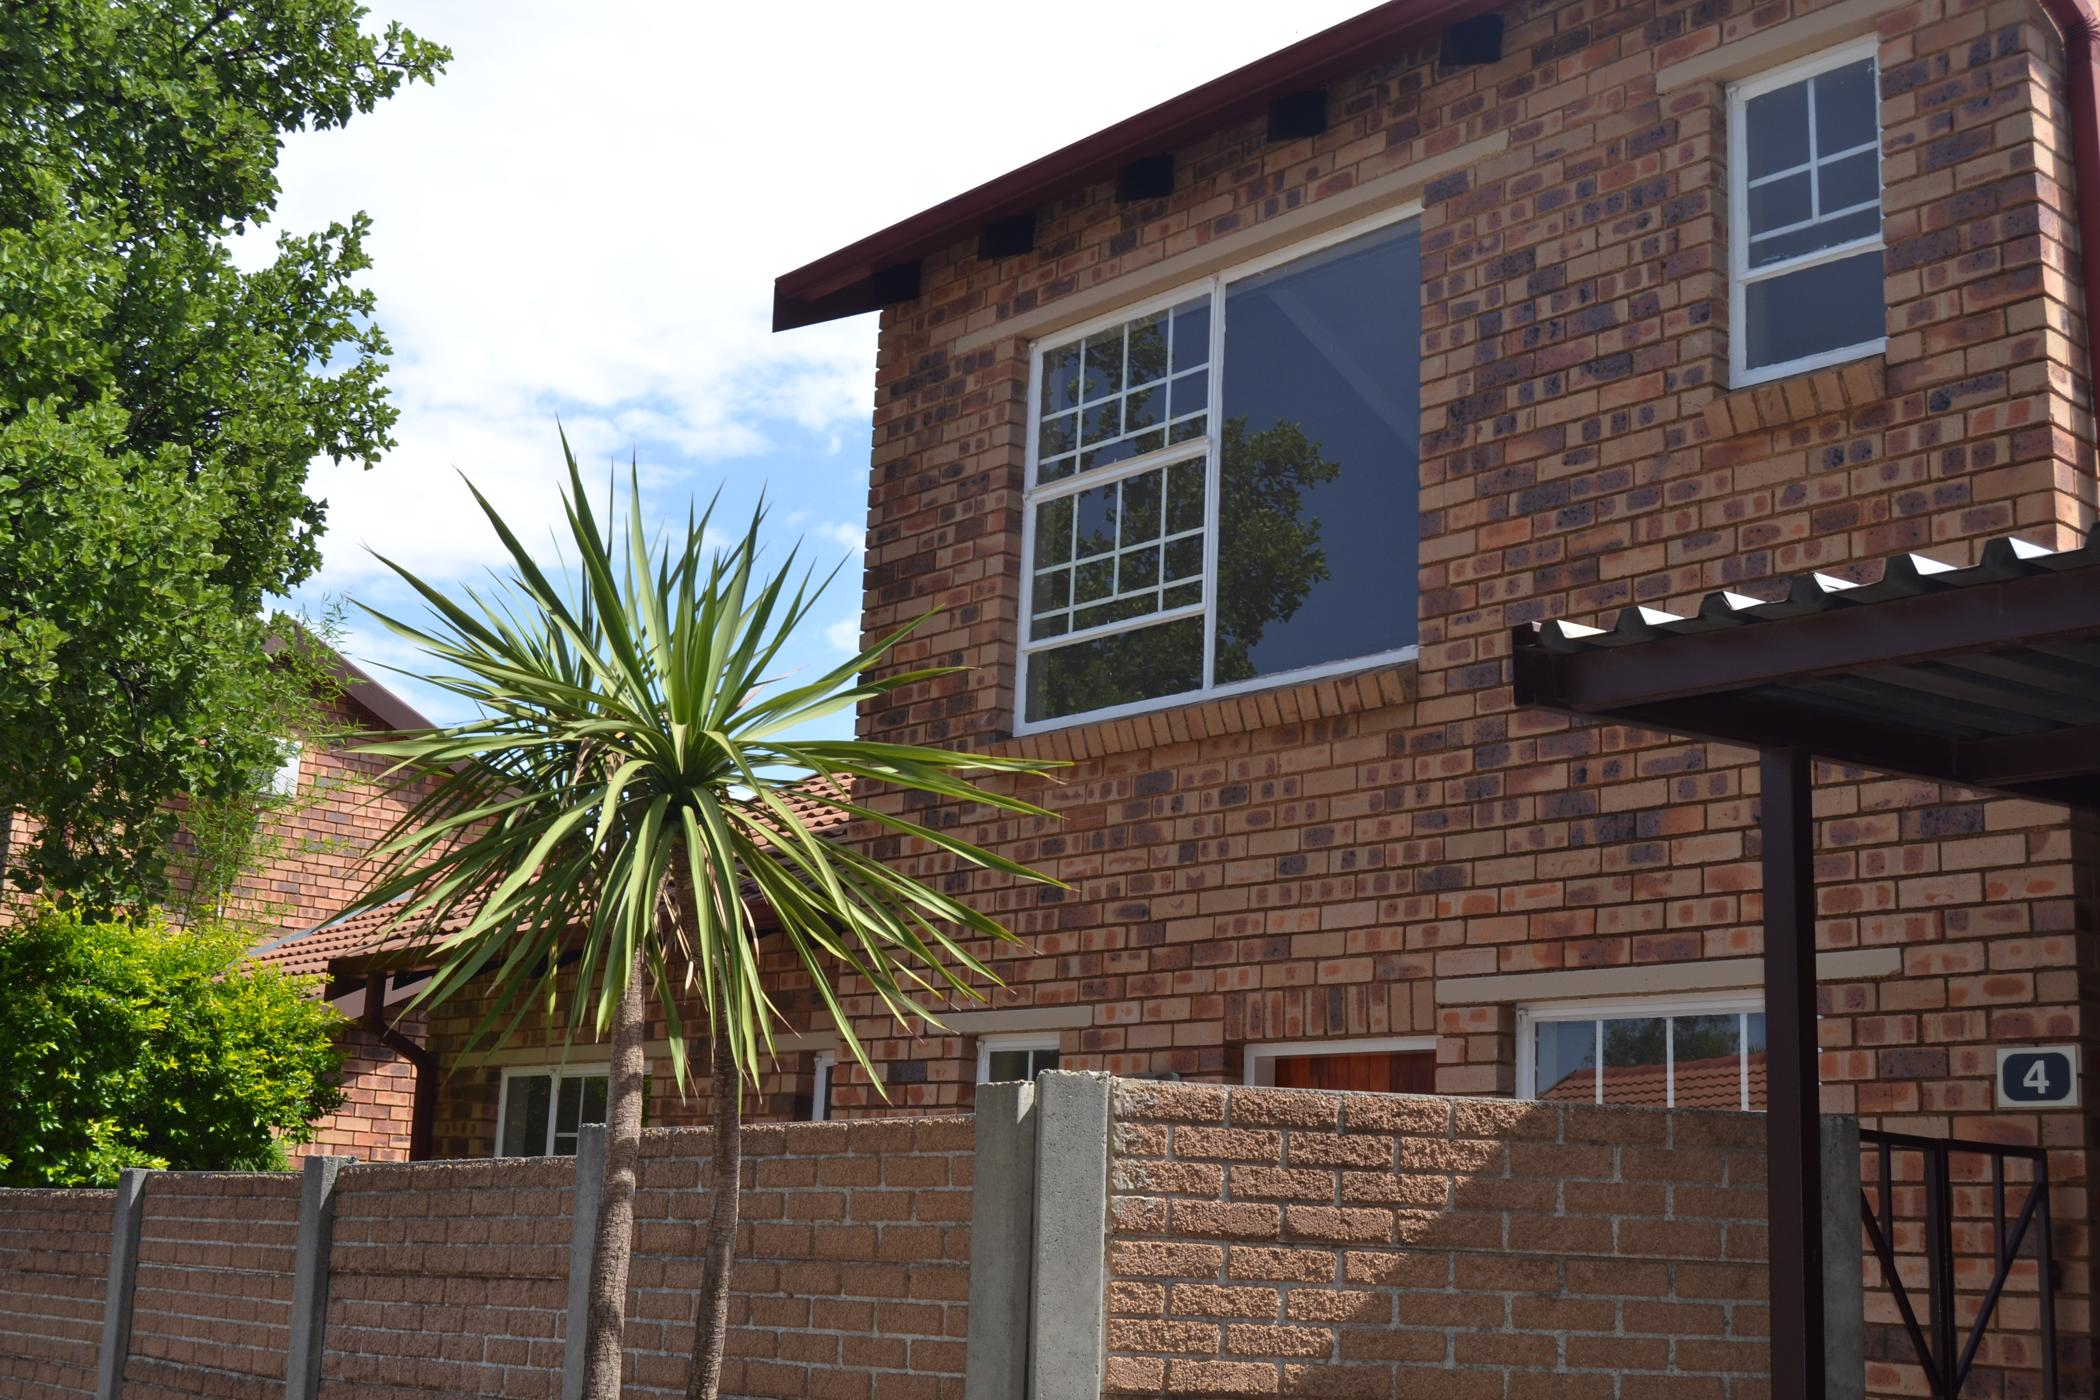 https://listing.pamgolding.co.za/images/properties/201812/1237208/H/1237208_H_17.jpg